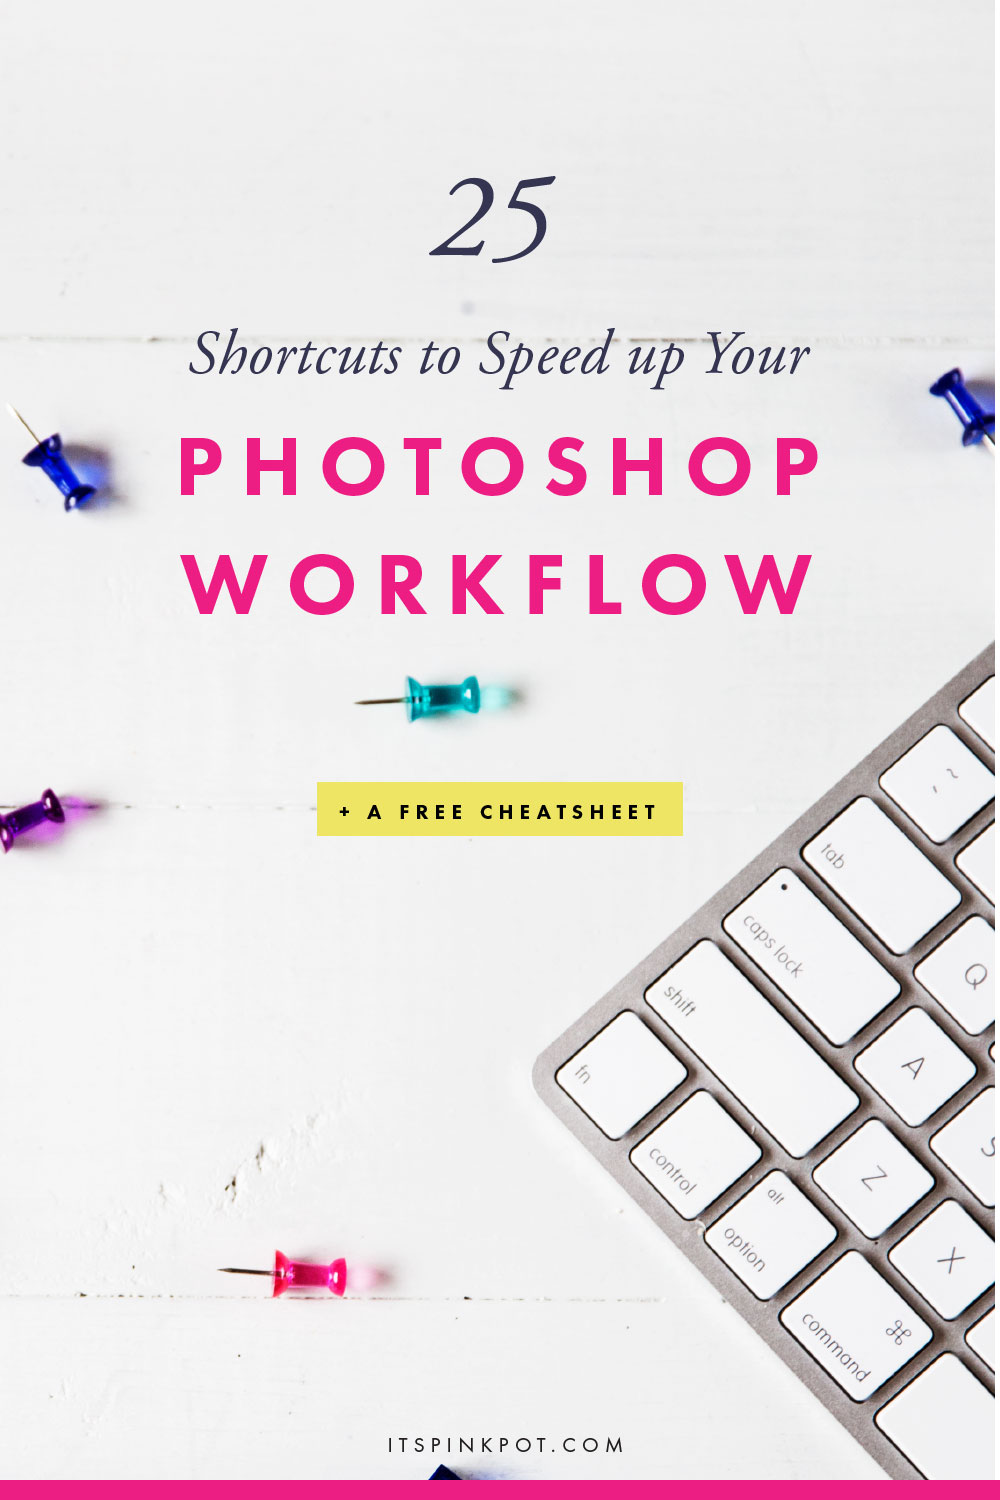 These 25 Photoshop shortcuts and tricks will speed up your workflow and save you a lot of time in your blog & Business. Plus Download a FREE cheatsheet too!